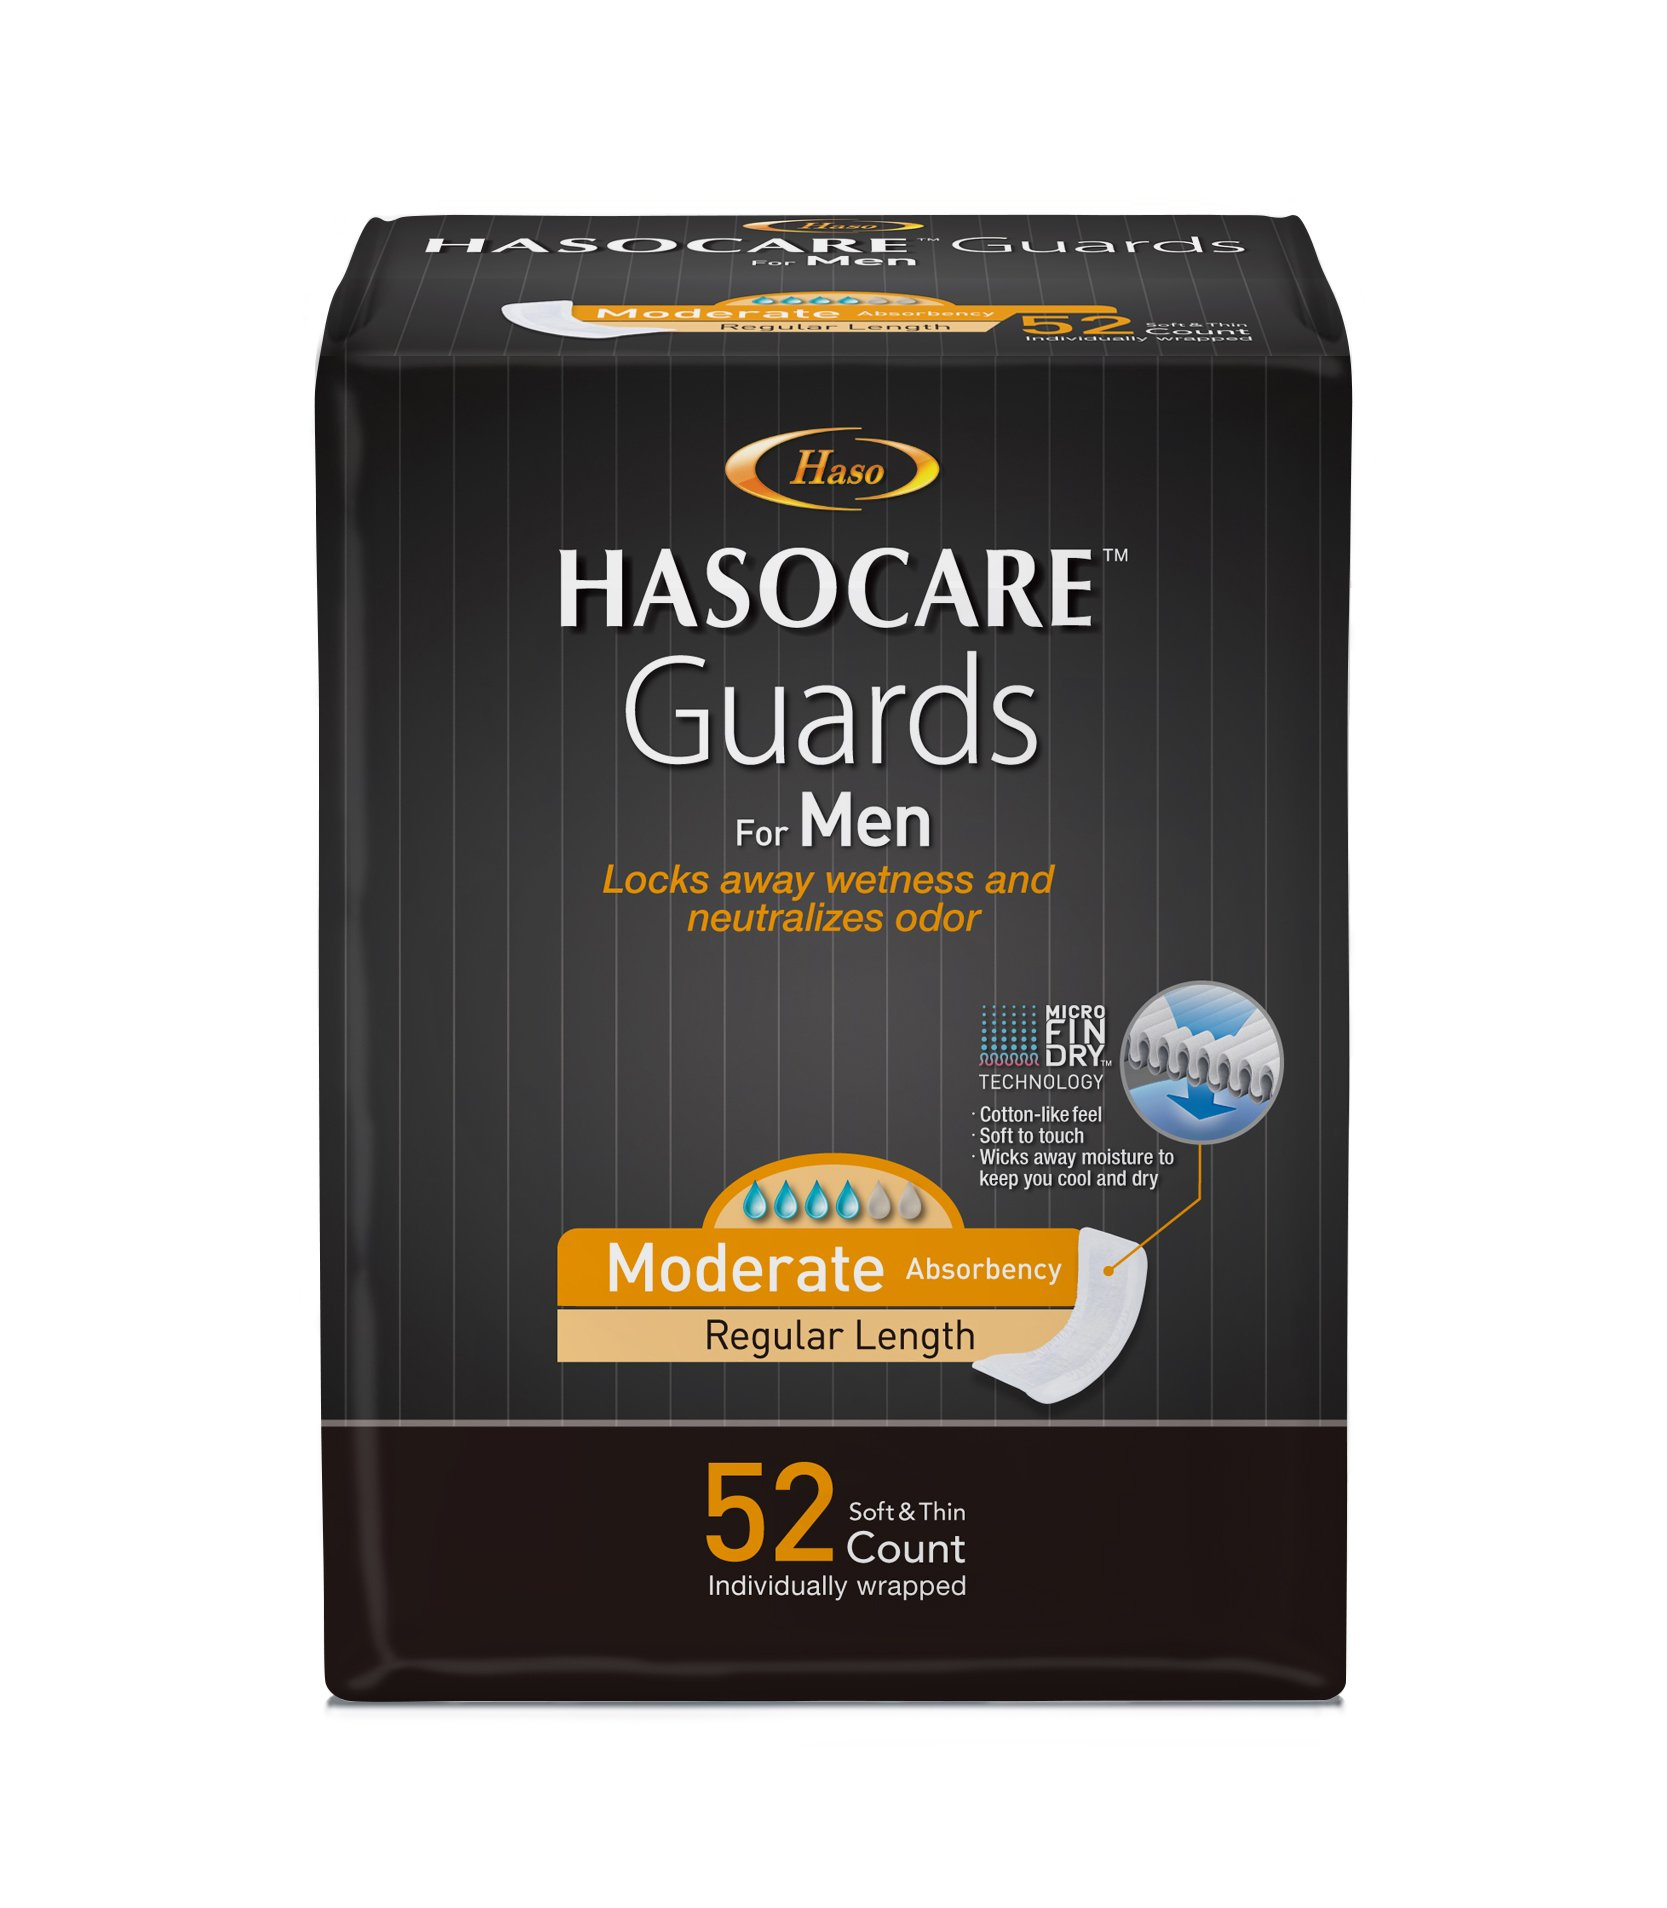 HASOCARE Incontinence Guards For Men, Moderate Absorbency , Regular Length, 52 Count